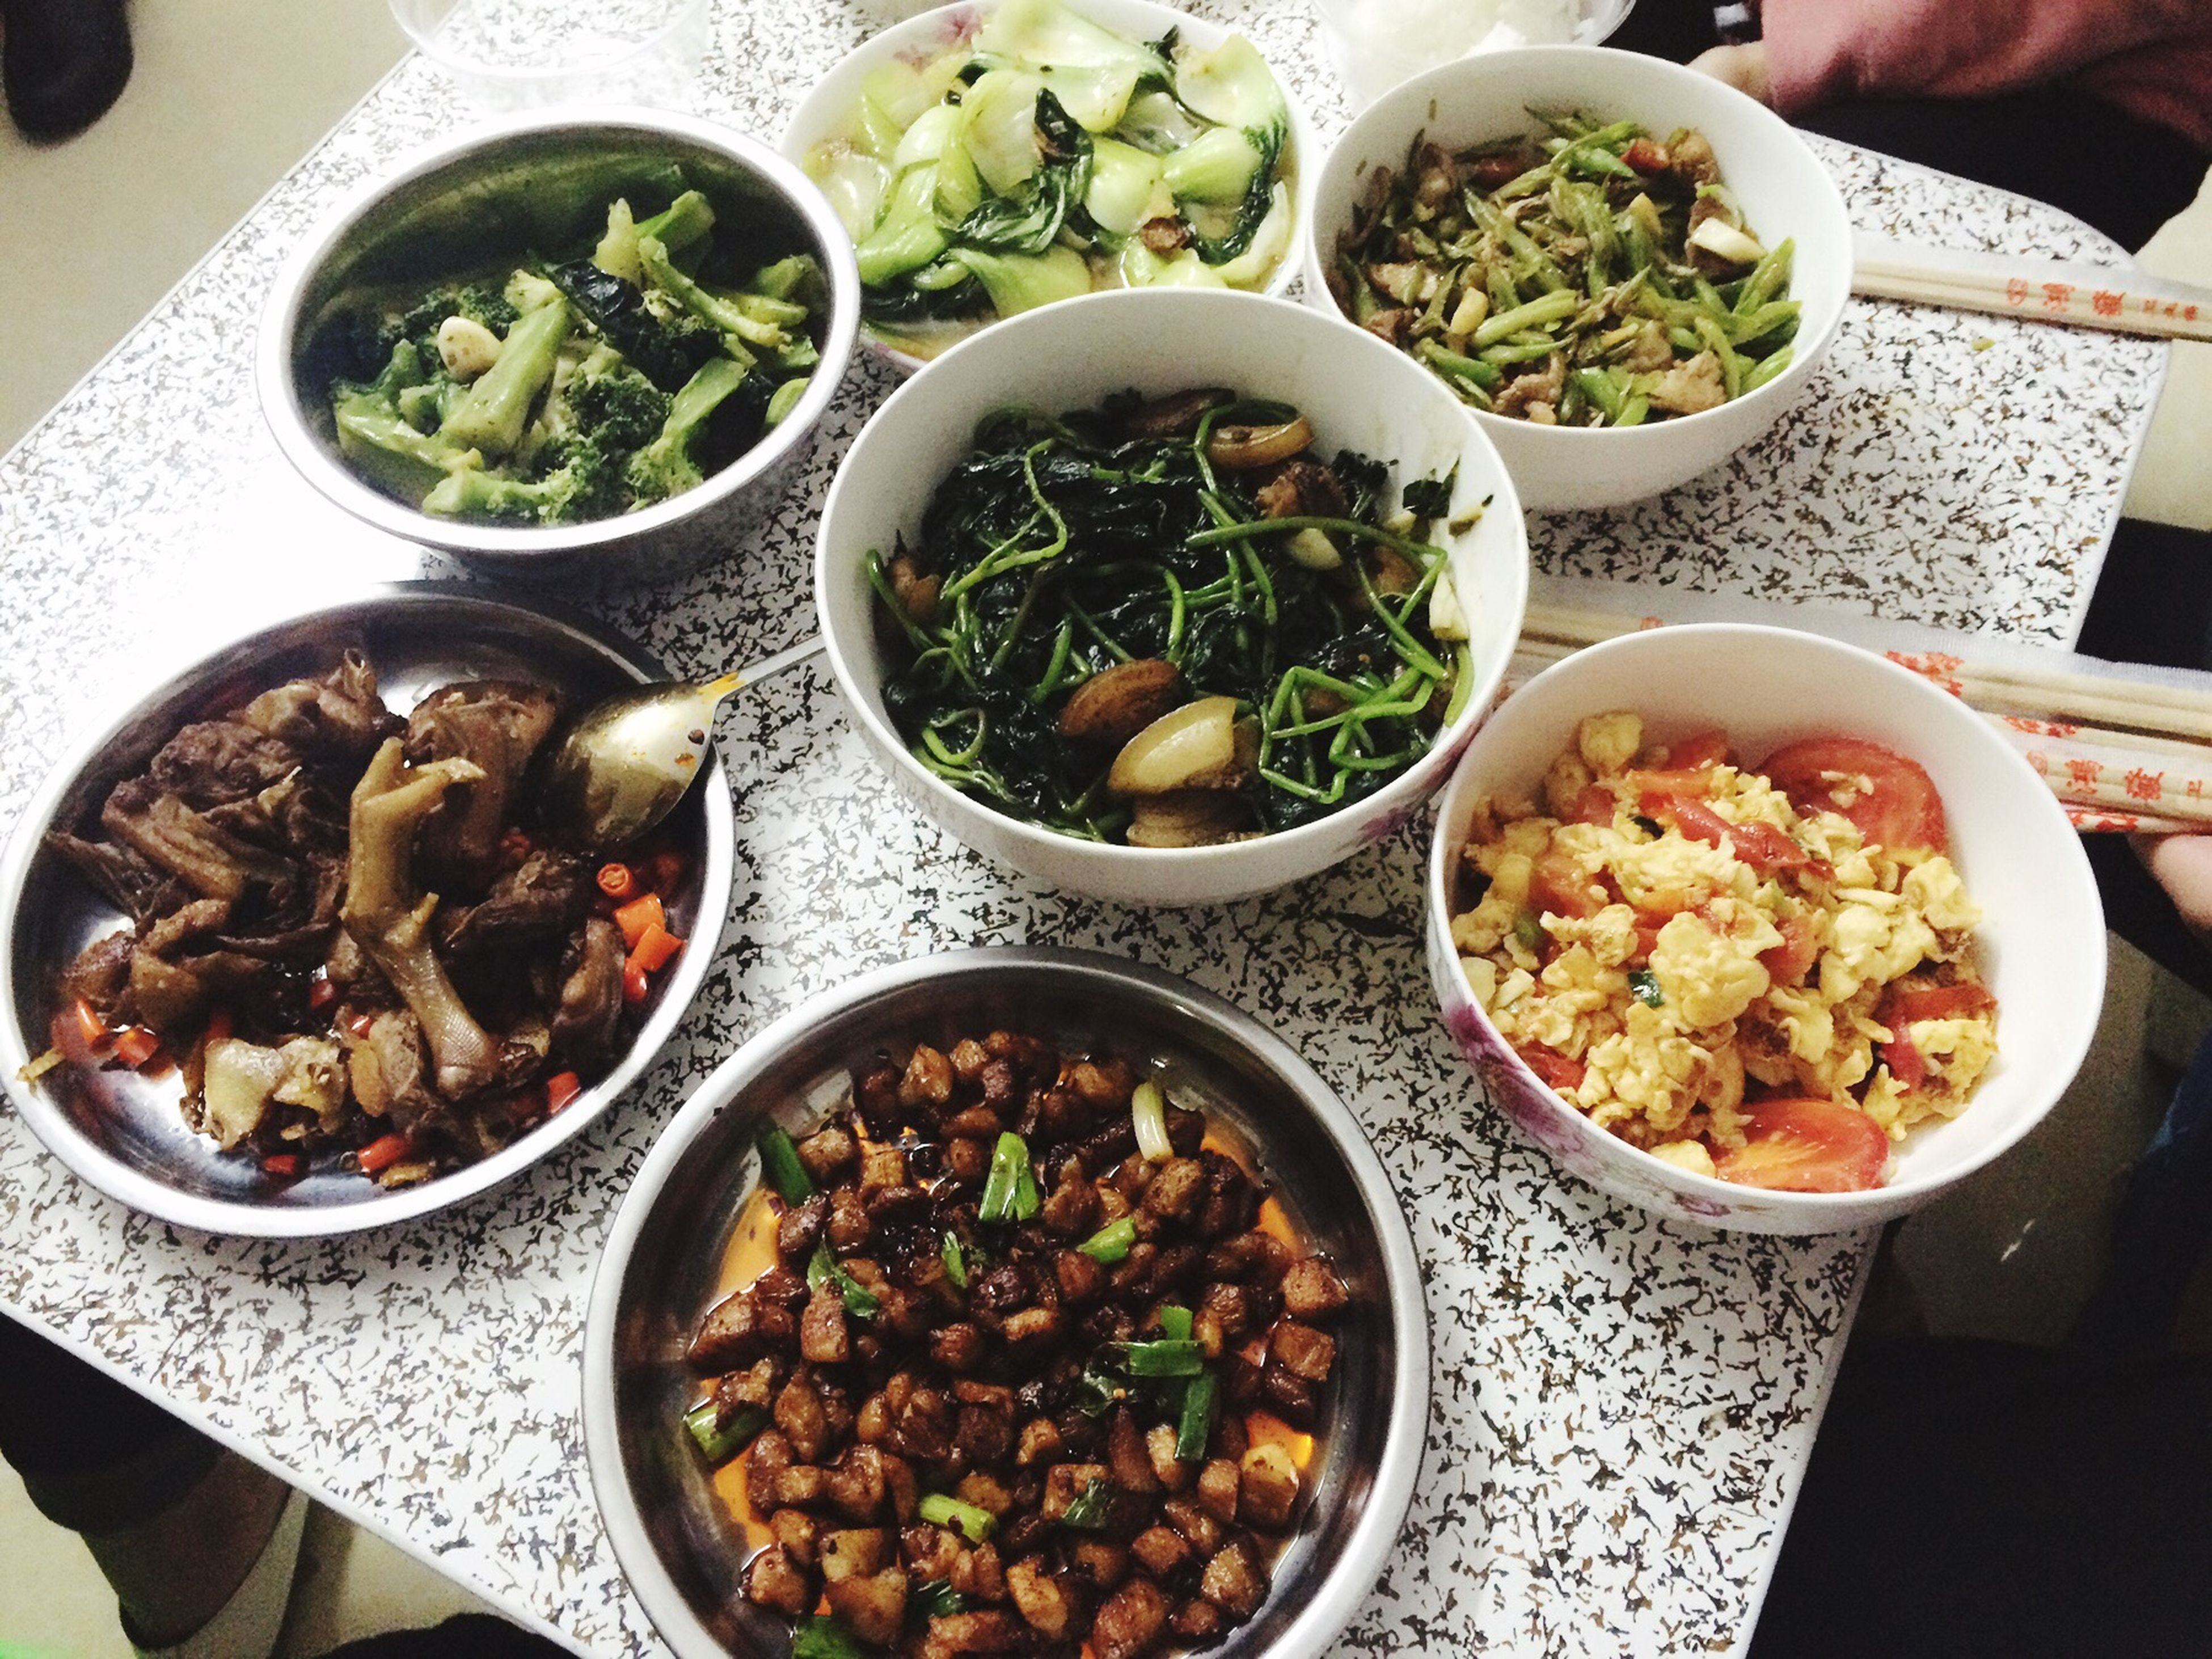 food and drink, food, freshness, healthy eating, ready-to-eat, indoors, table, plate, bowl, salad, vegetable, high angle view, meal, still life, variation, serving size, directly above, served, meat, rice - food staple